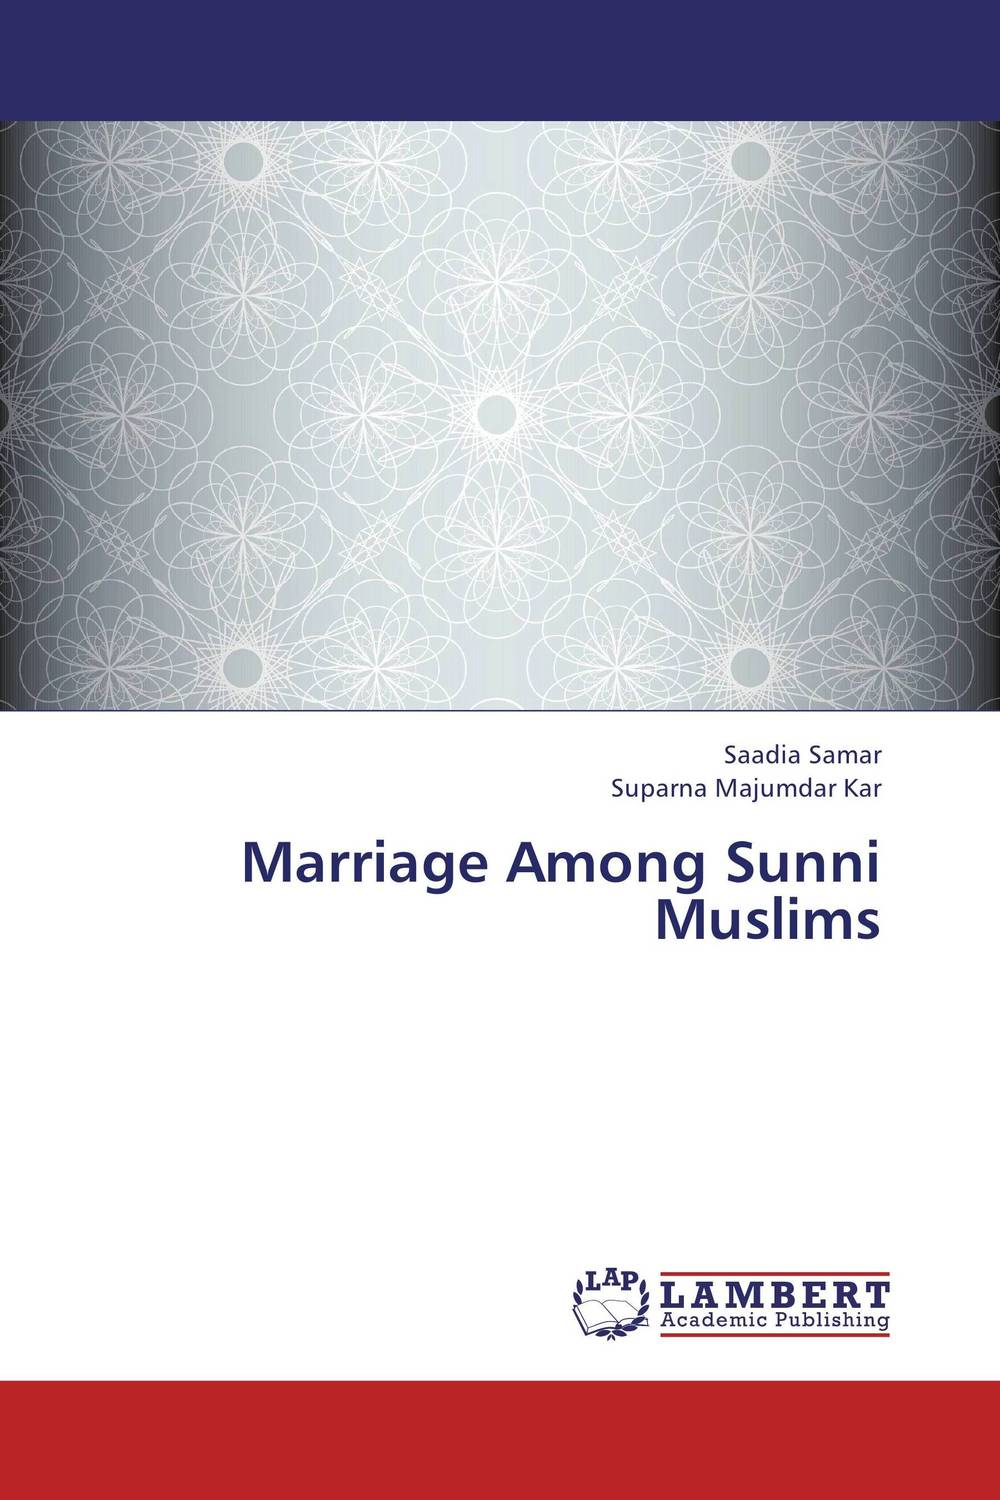 Marriage Among Sunni Muslims